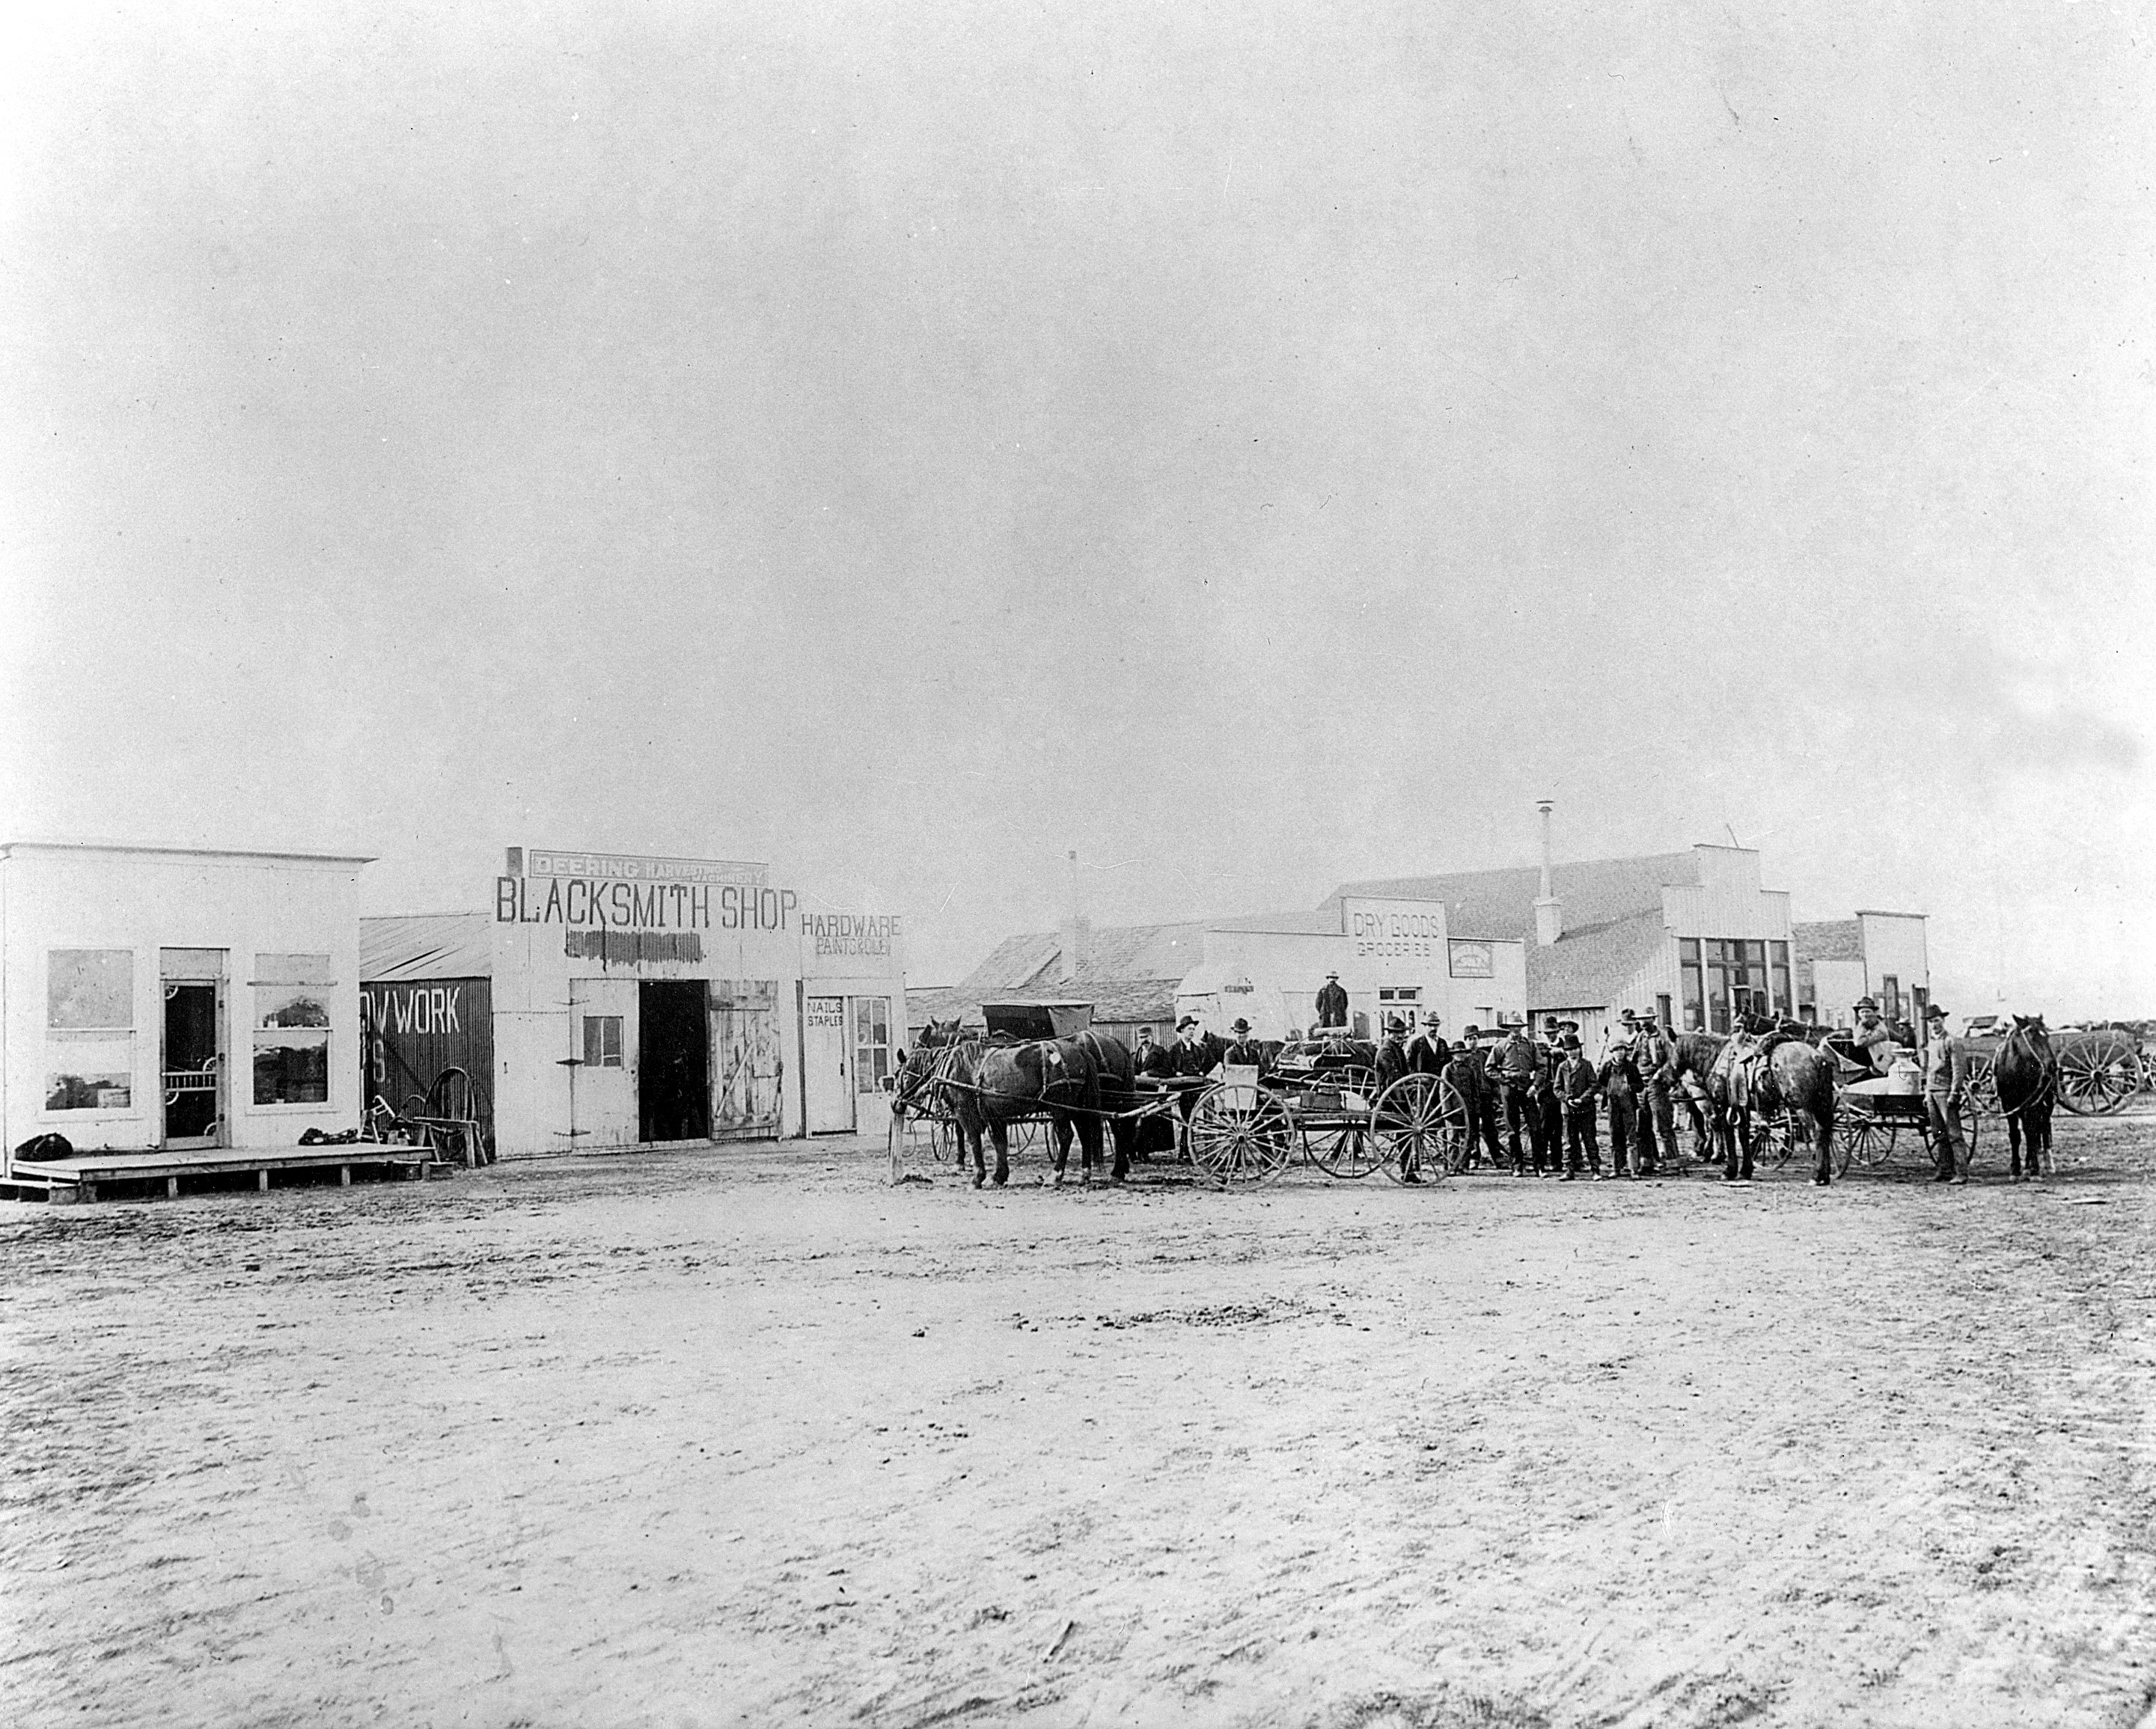 Euclid Avenue Looking Southwest c 1903 From left to right the structures situated on the south side of Euclid Avenue today's Mainstreet are the old Hoffman Foster Meat Market the Nicoli Blacksmith Shop A Amos General Store Walter Lewis General Merchandise Store and the Oswald Shoe Store The blacksmith shop was torn down not long after this picture was taken and in 1910 Jim New b built his barber shop on the site The barber shop would be e a long time Parker post office